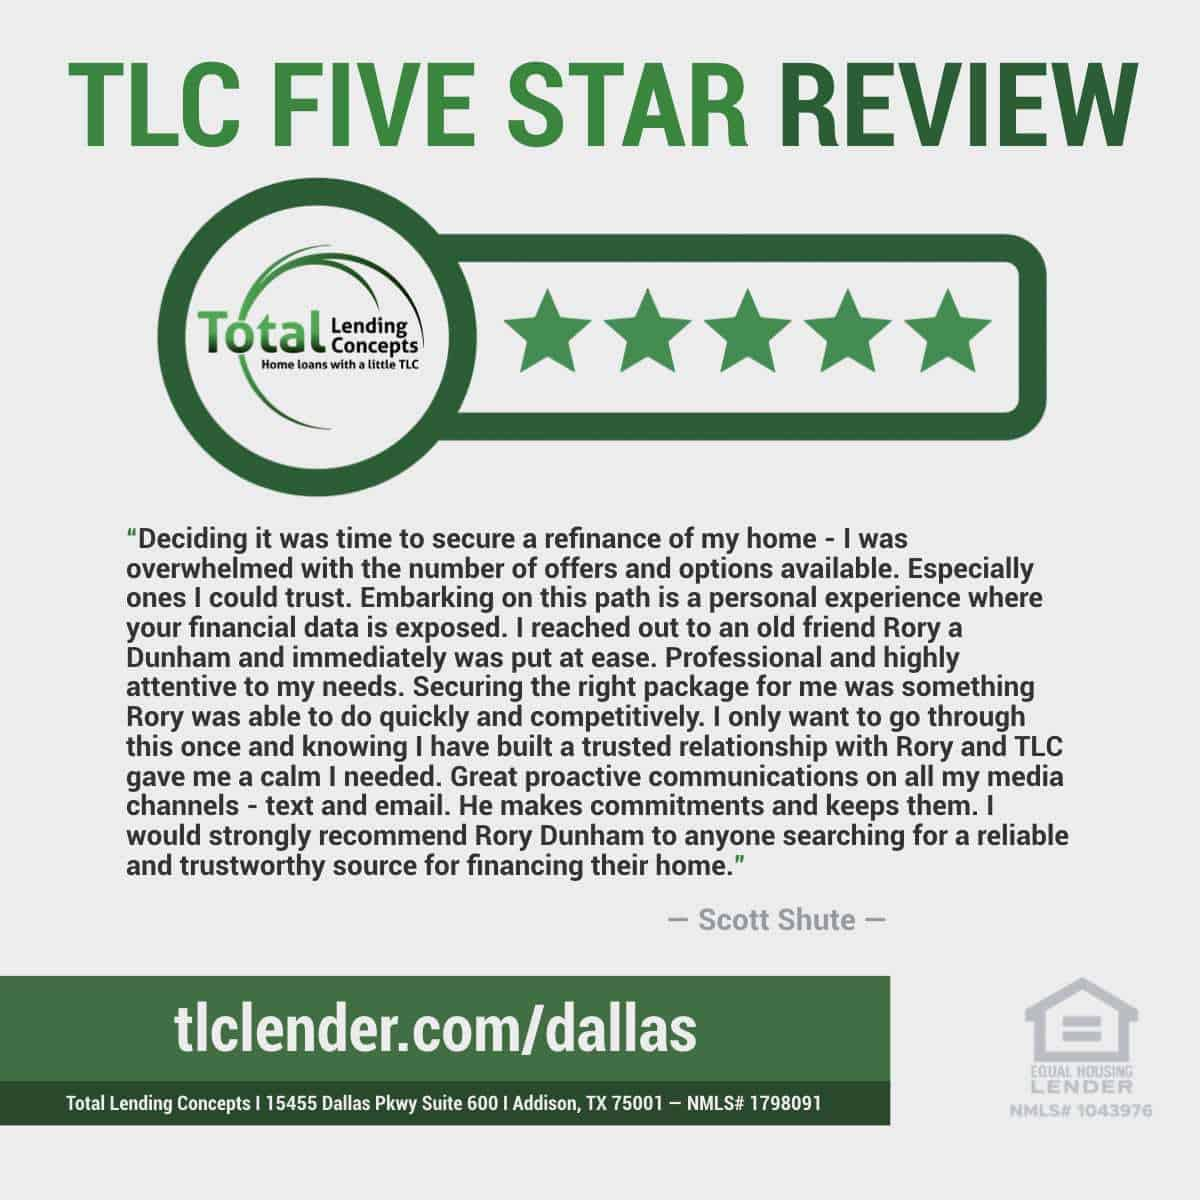 Total Lending Concepts Five Star Review Scott Shute in Addison Texas for Rory Dunham Home Loan